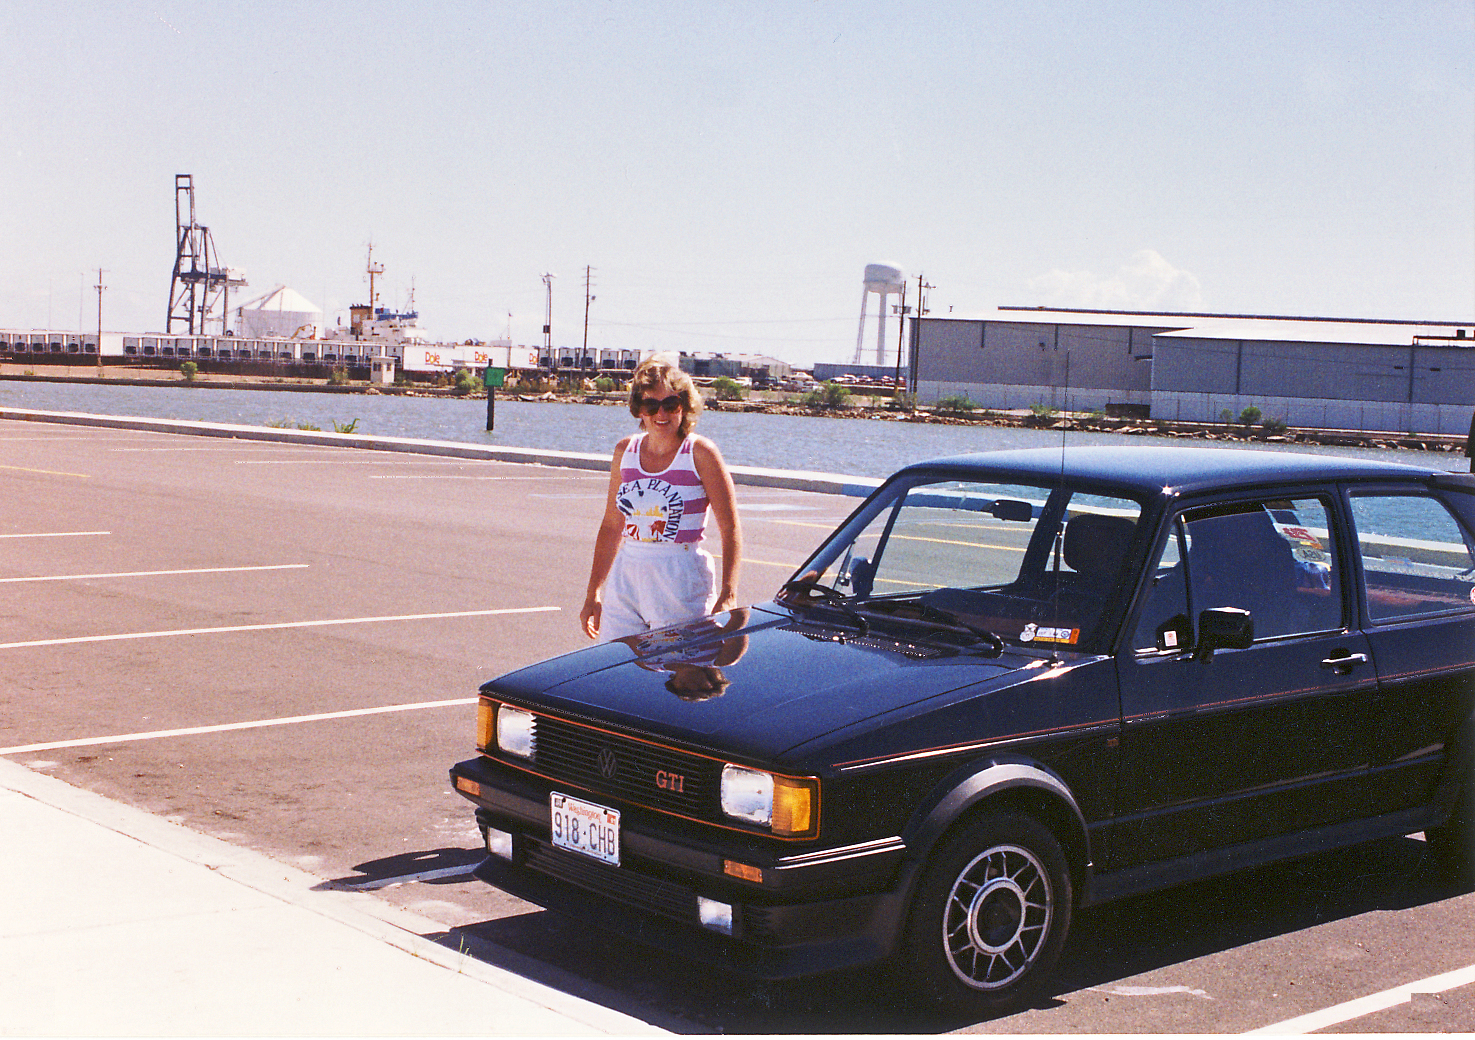 1984 Volkswagen Rabbit picture